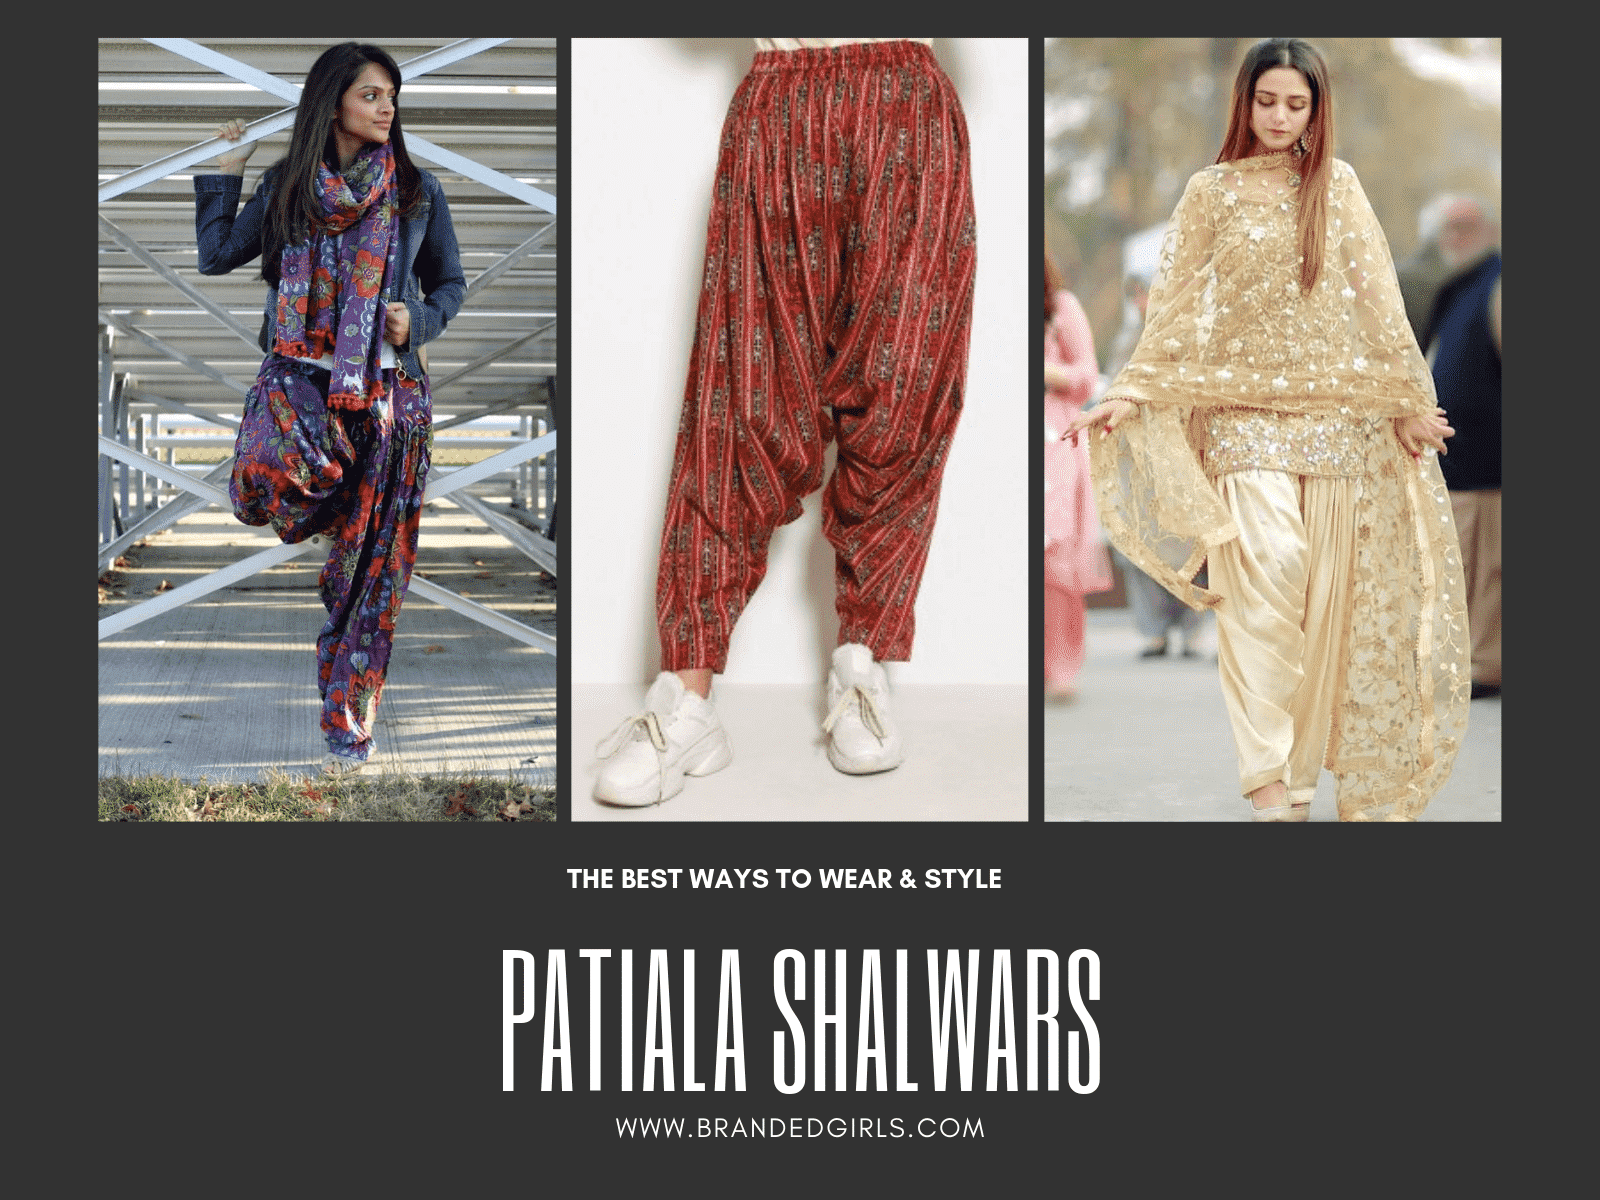 HOW-TO-WEAR-PATIALA-SHALWAR Classy Patiala Outfits-34 Amazing Ways to Wear Patiala Salwar